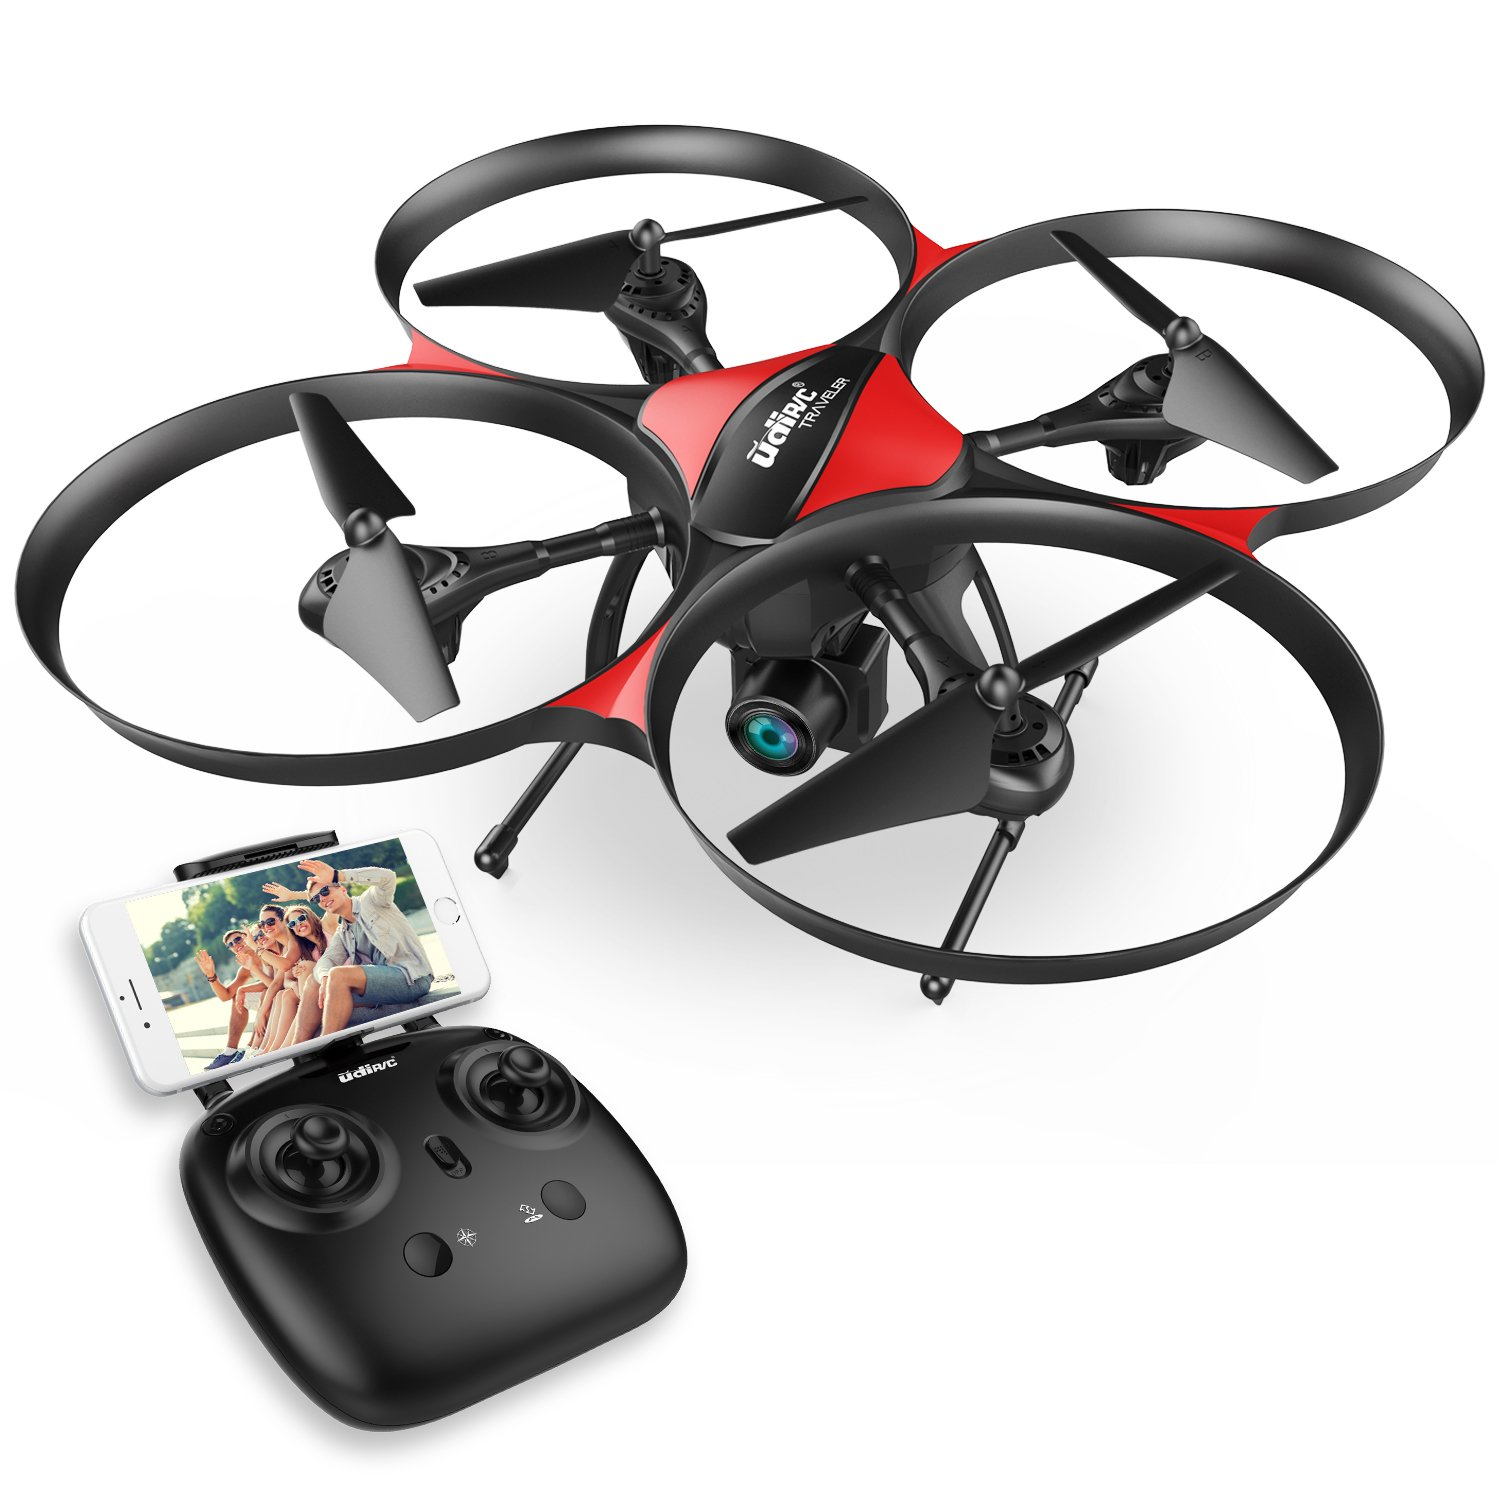 DROCON Traveler Beginner Drone with Optical Anti-Shake HD FPV Camera 1280 x 720P UDI U818PLUS Altitude Hold Stable Quadcopter TF Card 4GB Included